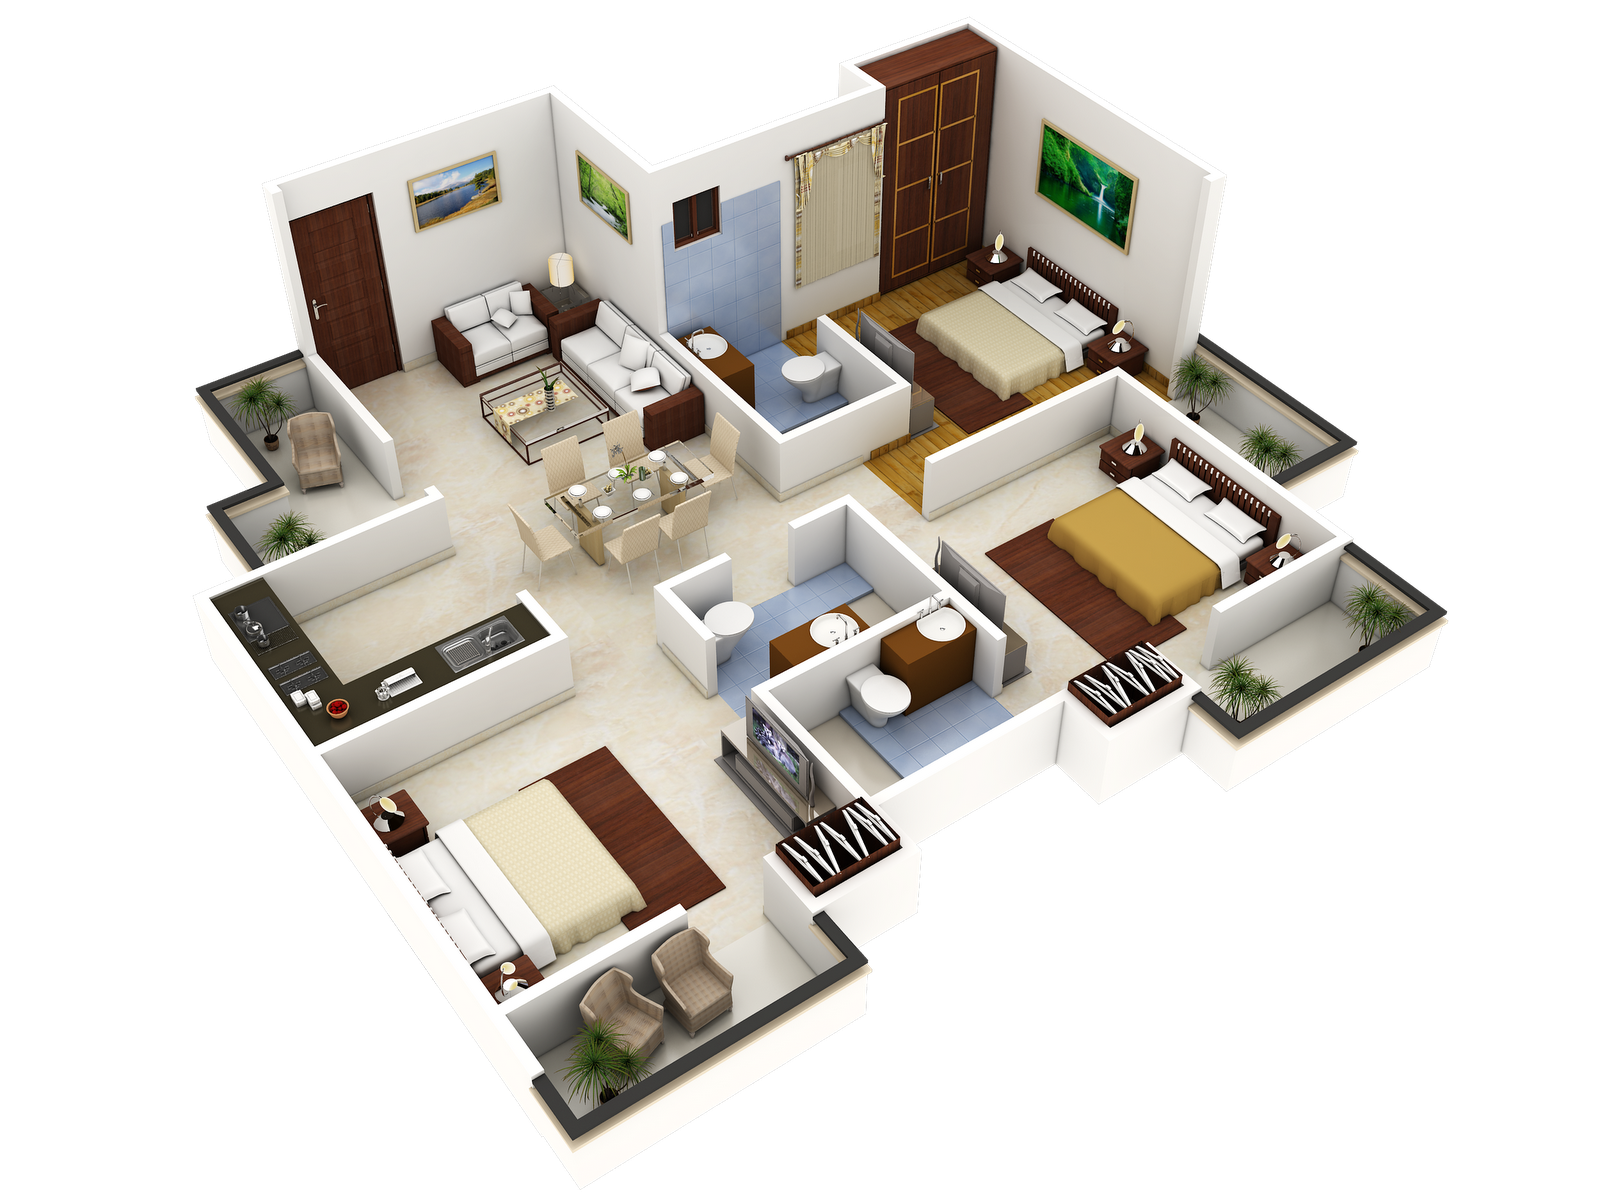 3 Bedroom House Designs 3d Buscar Con Google Grandes Mansiones Y Construcciones Pinterest